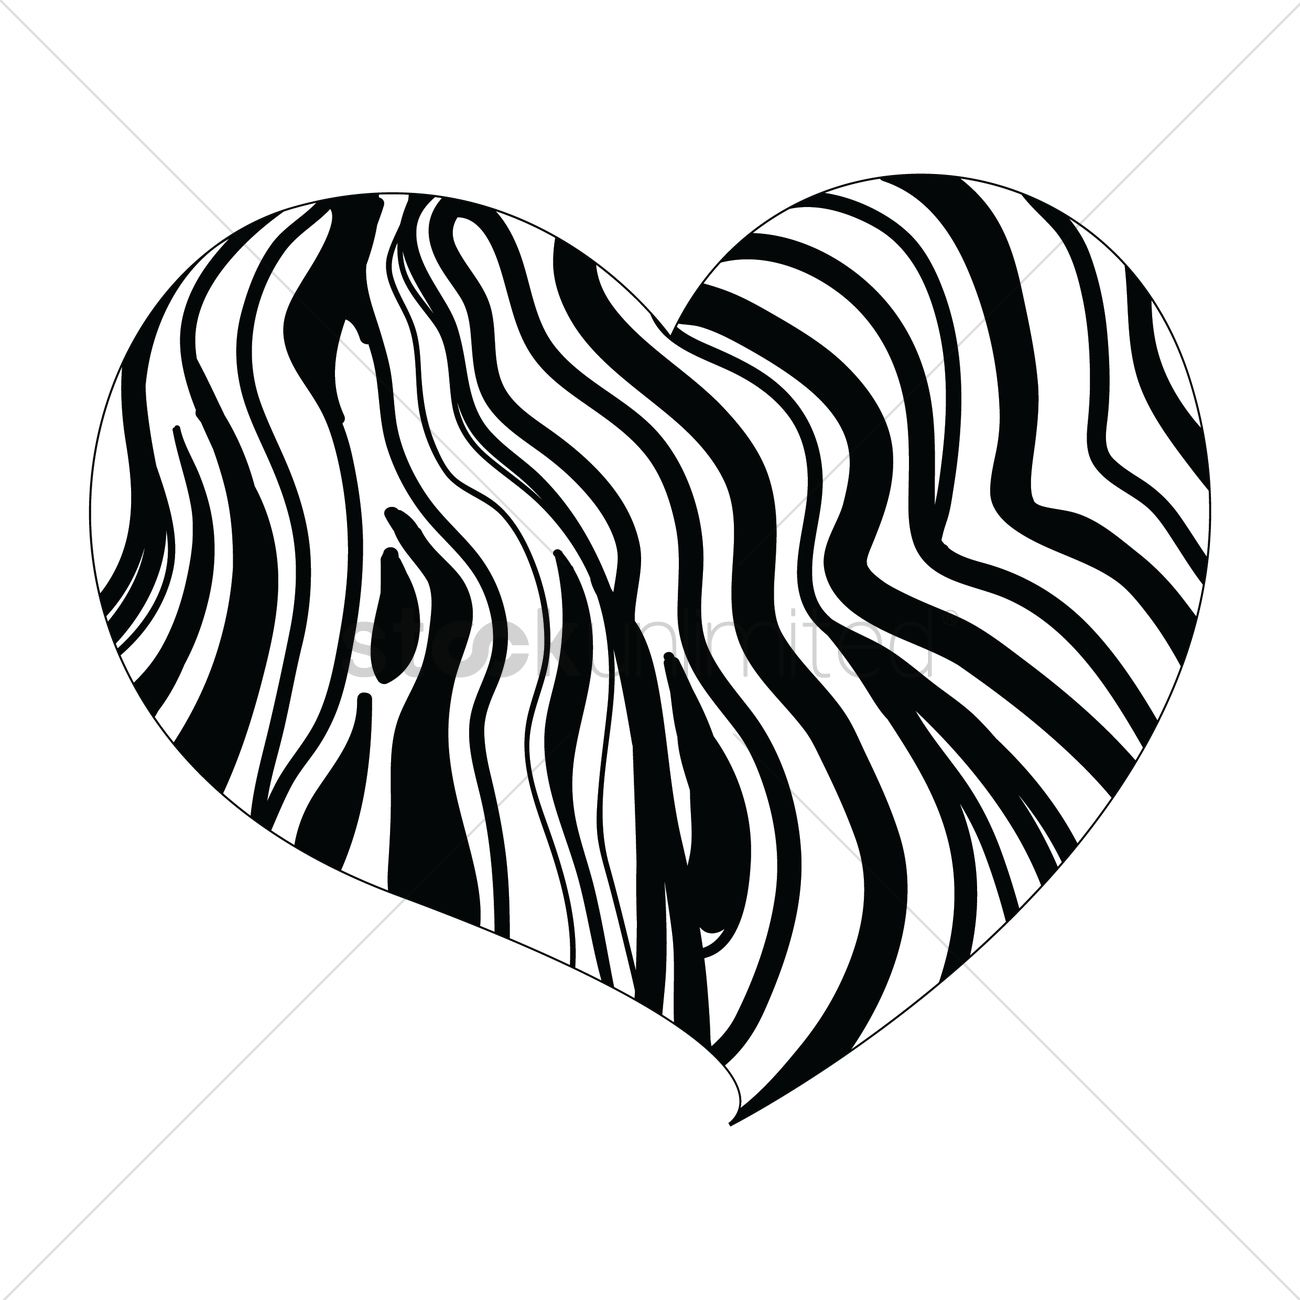 heart design with zebra print vector graphic